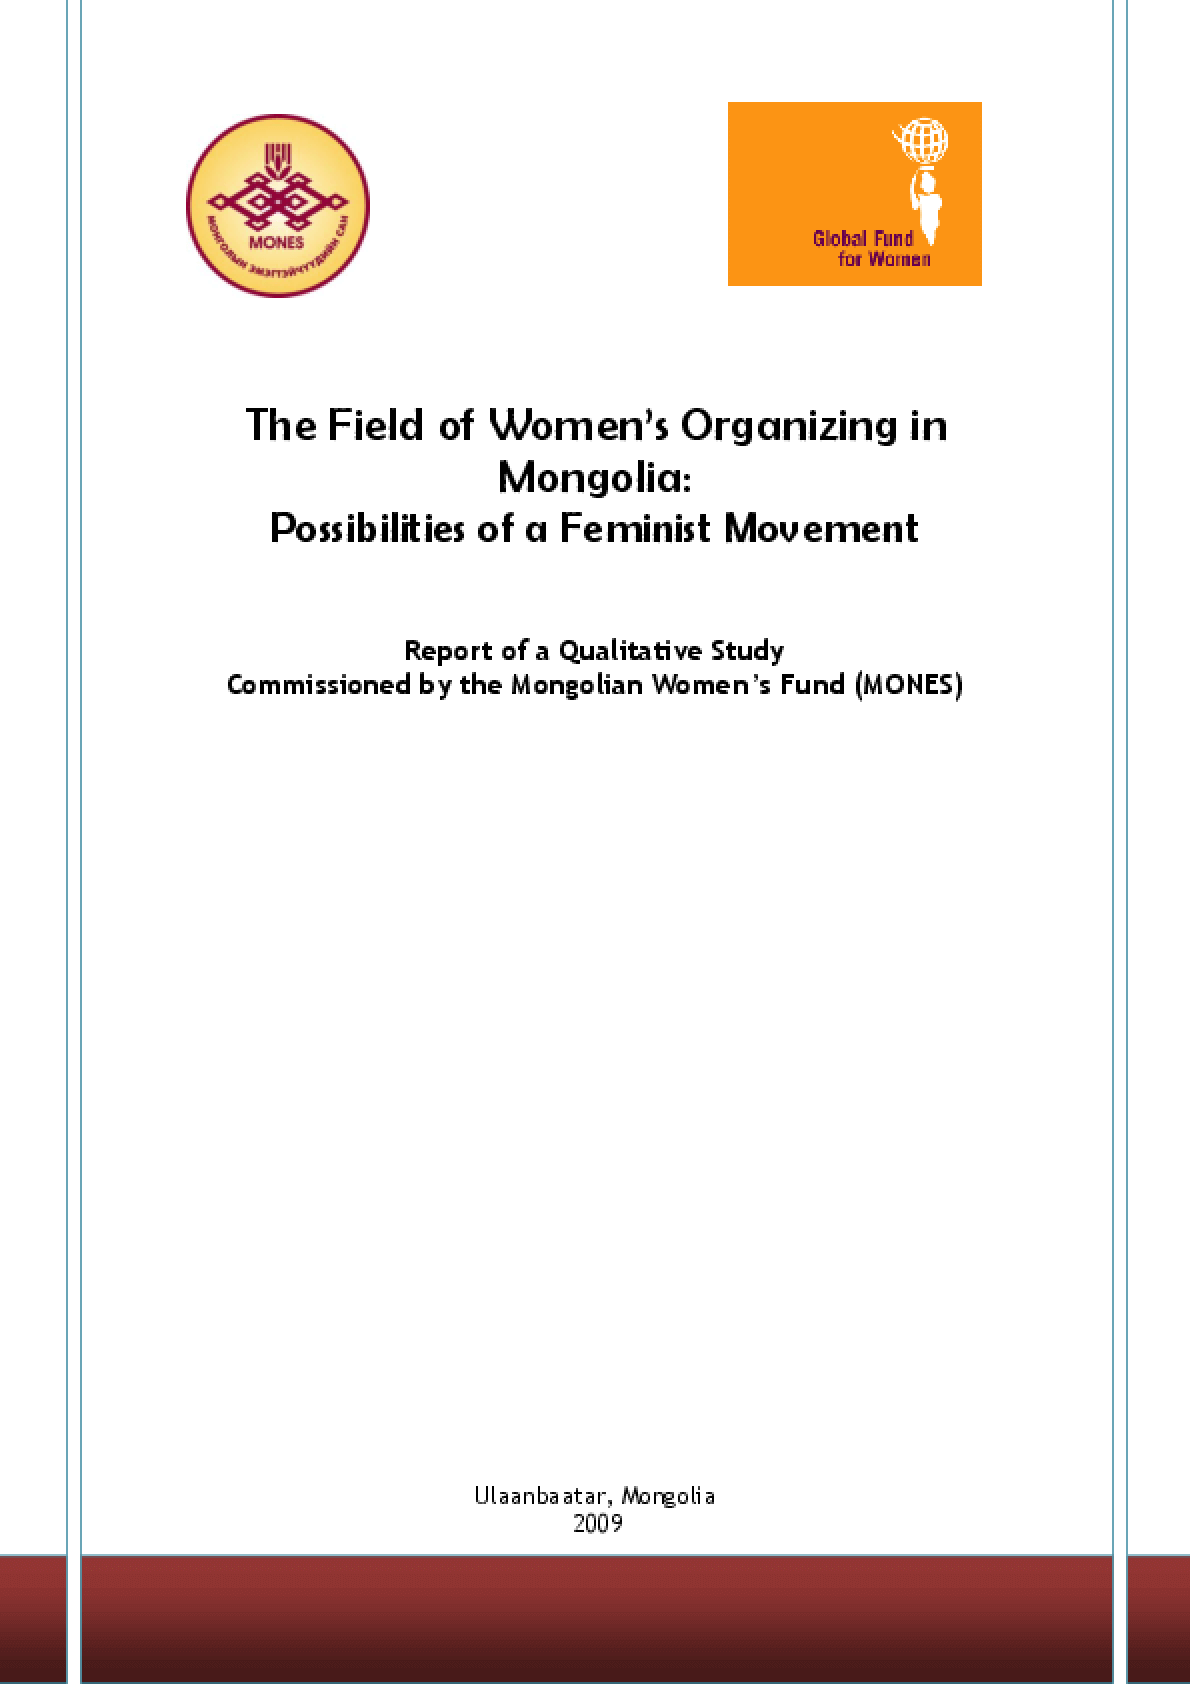 The Field of Women's Organizing in Mongolia: Possibilities of a Feminist Movement